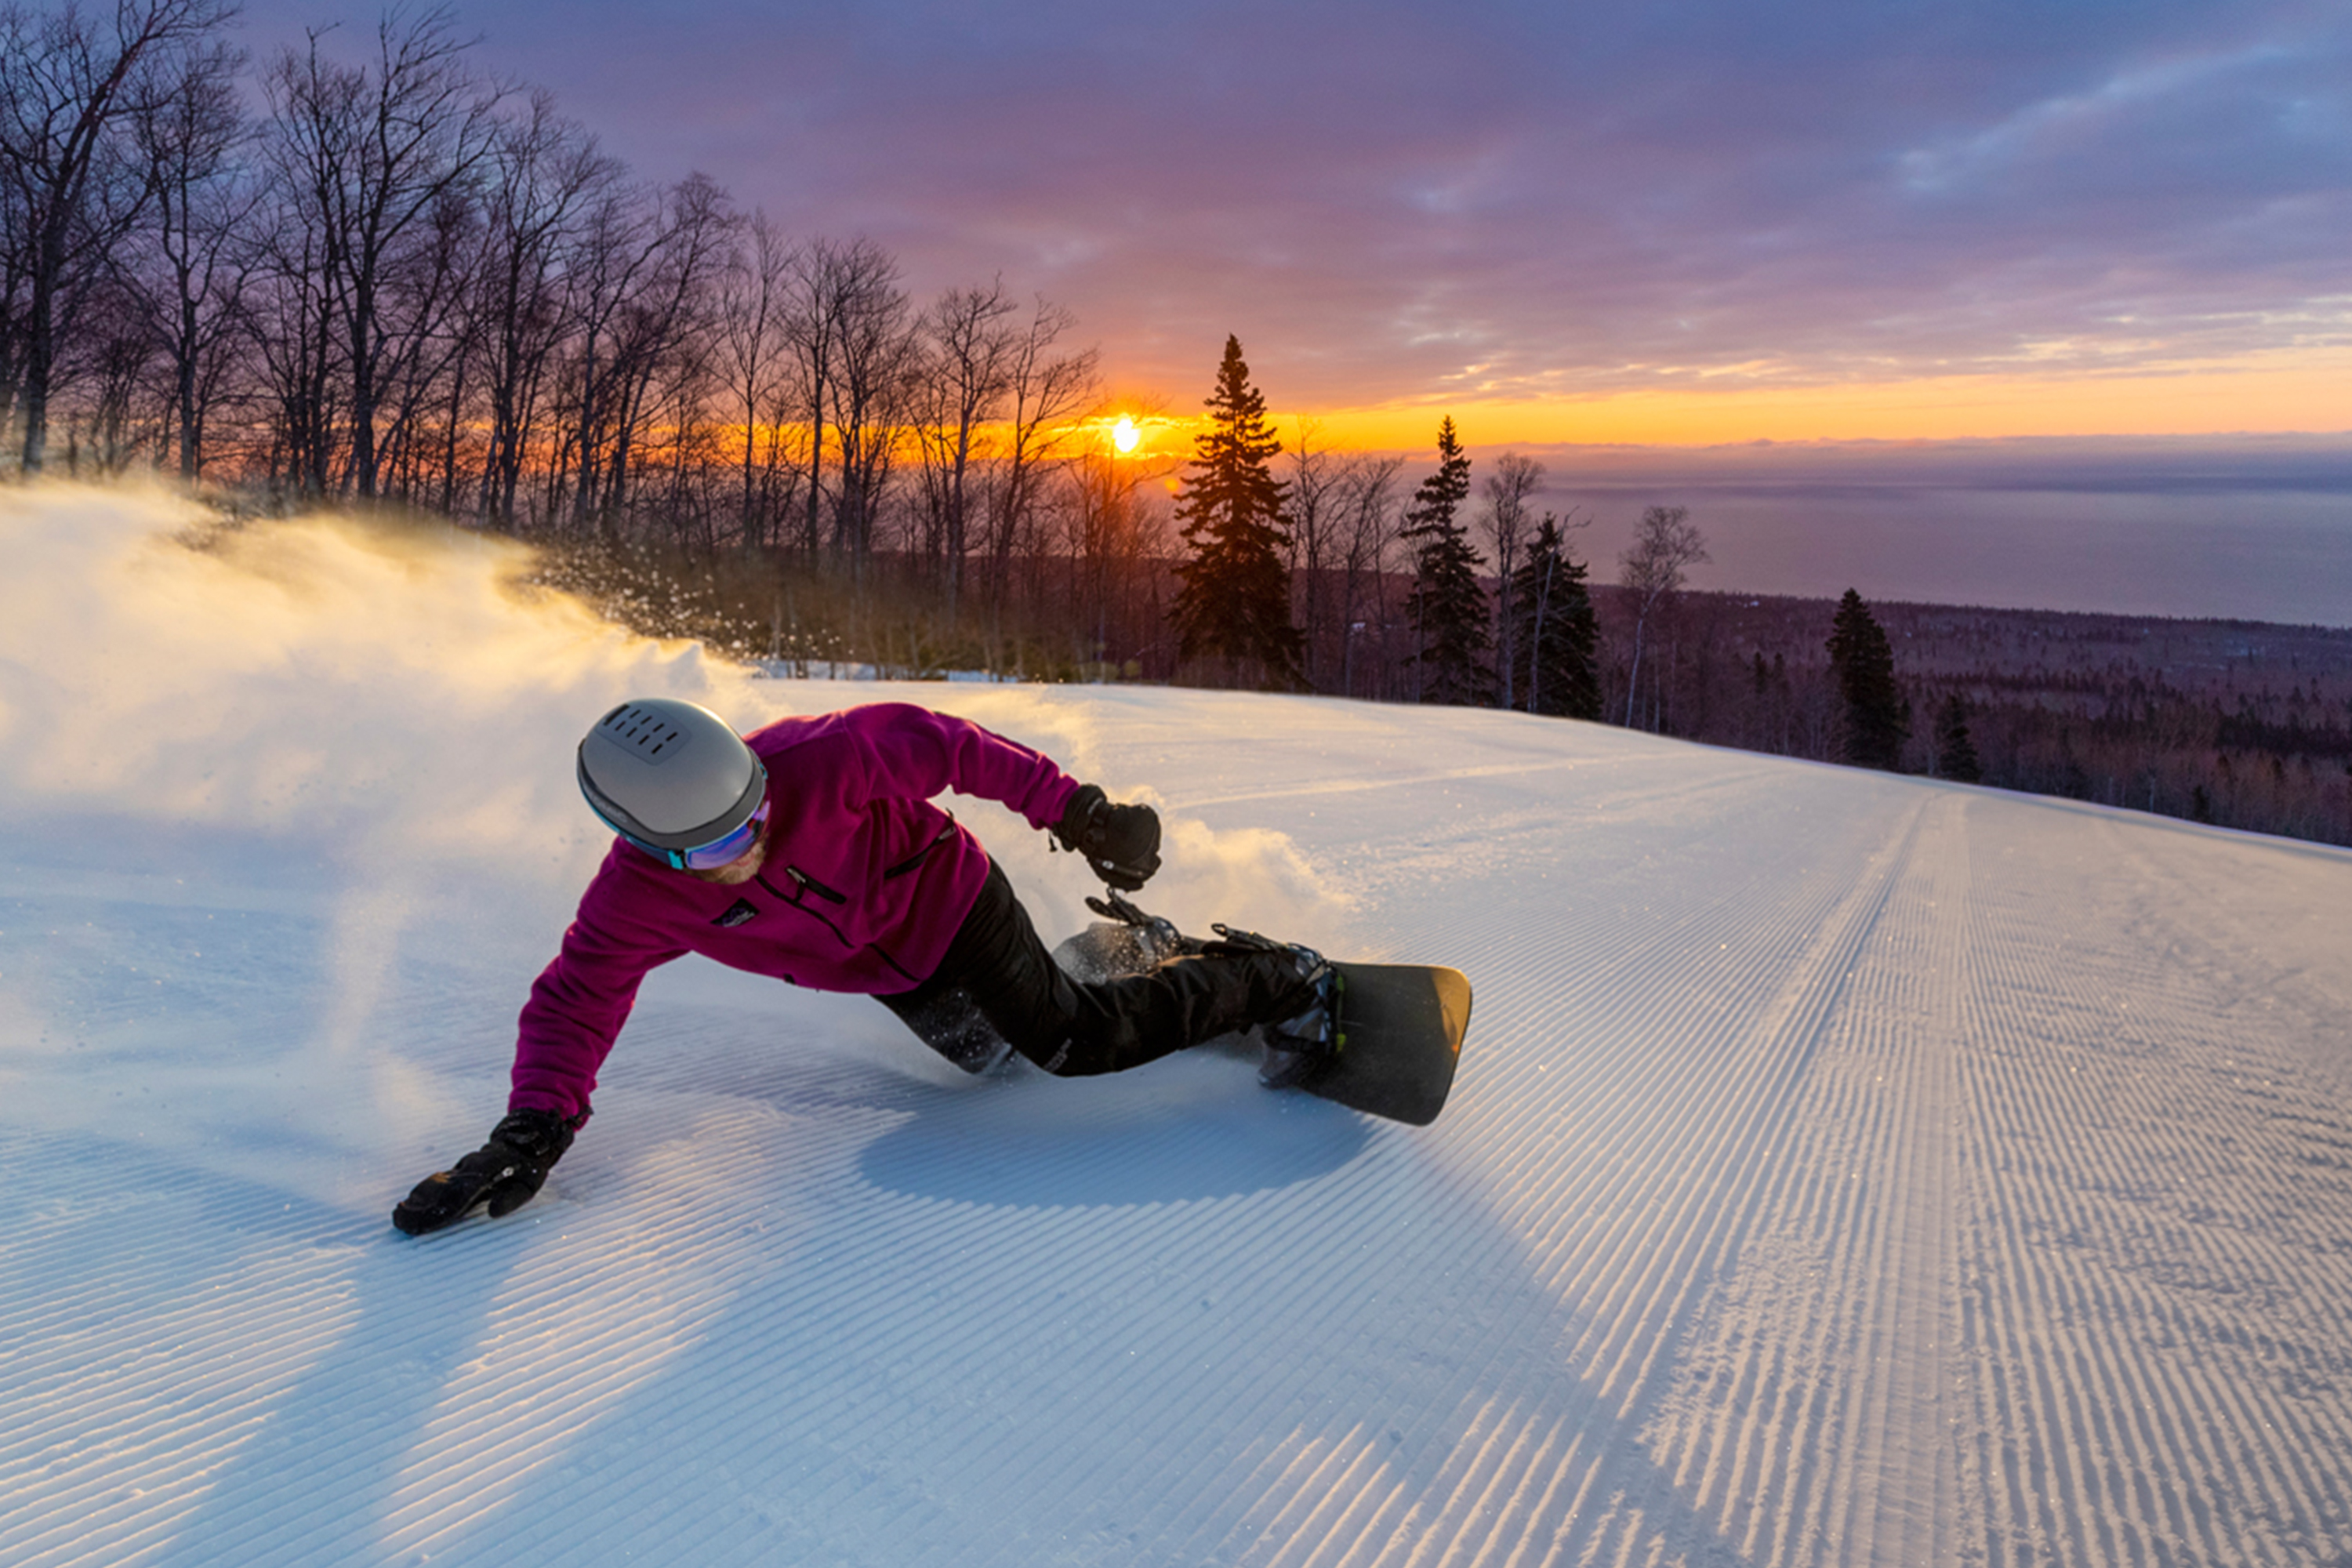 Person Snowboarding at Sunset